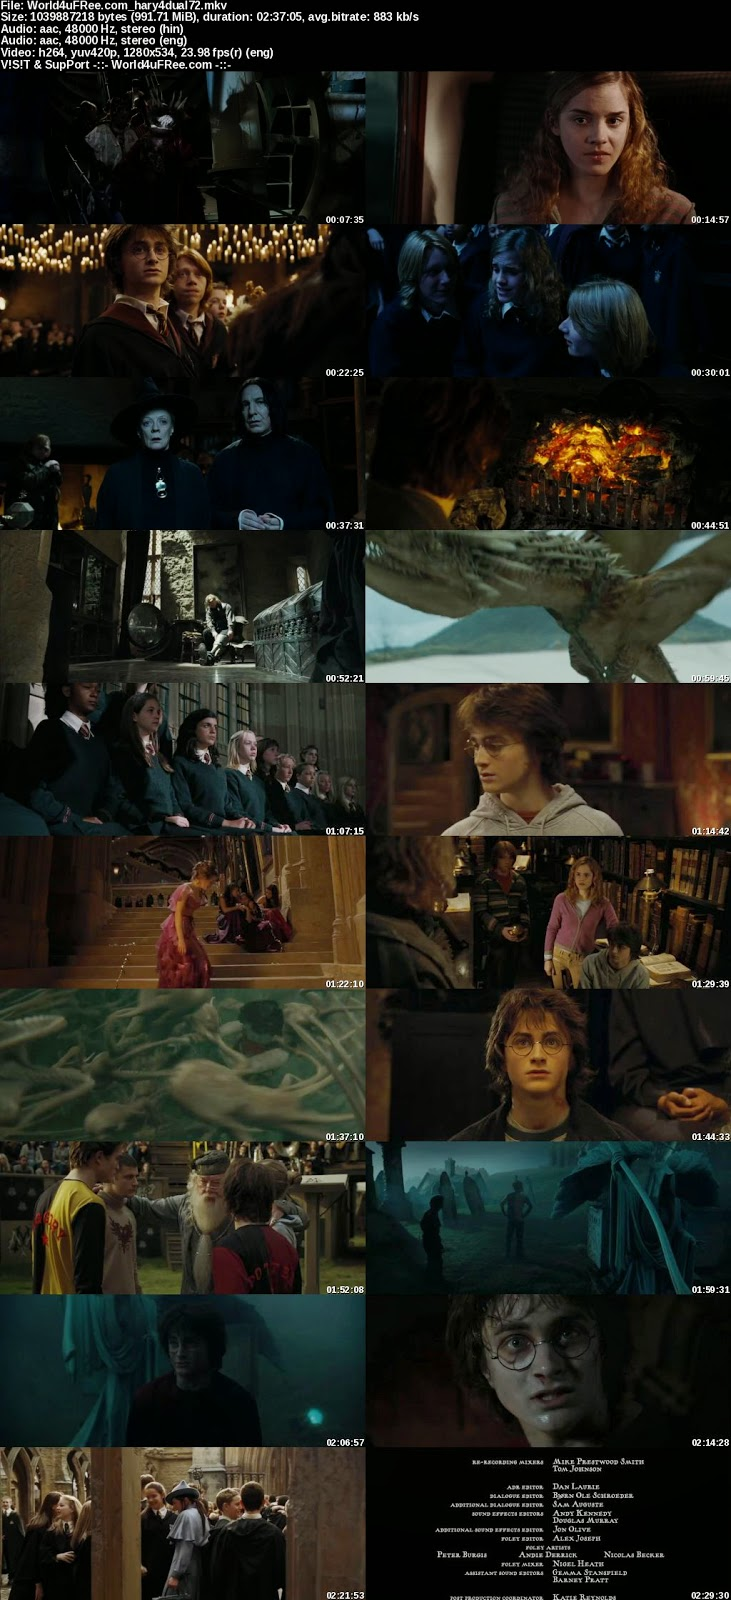 Harry Potter and the Goblet of Fire 2005 Hindi Dubbed Dual BRRip 720p world4ufree.to, hollywood movie Harry Potter and the Goblet of Fire 2005 hindi dubbed dual audio hindi english languages original audio 720p BRRip hdrip free download 700mb or watch online at world4ufree.to